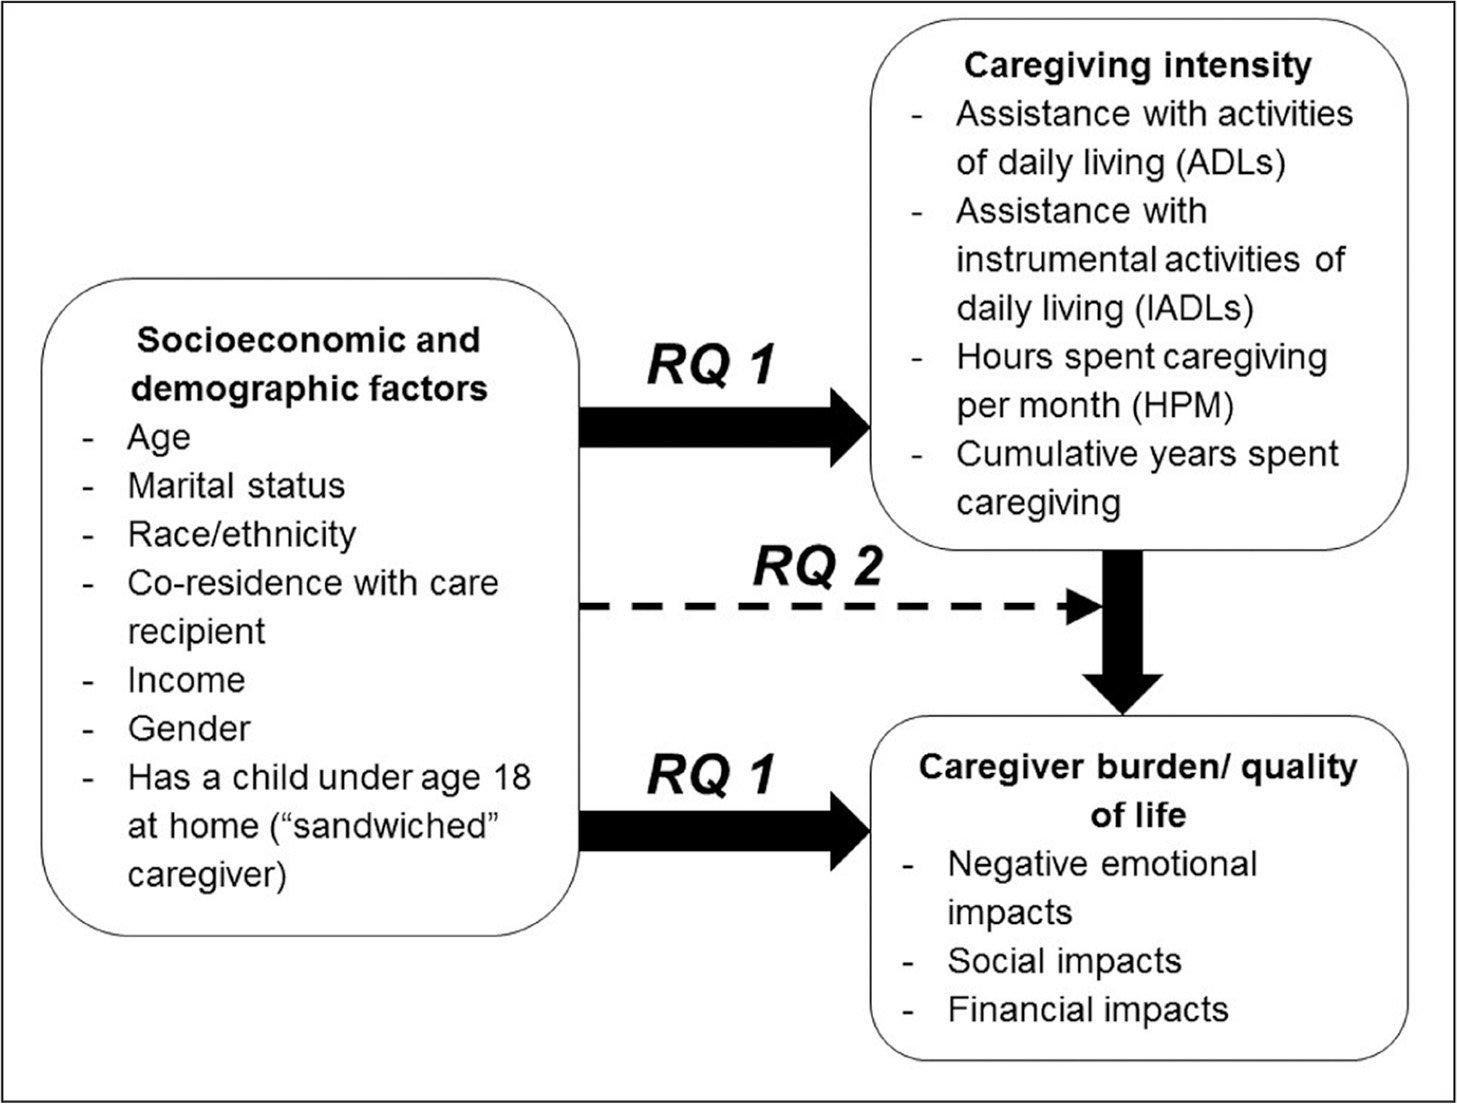 Overview of study diagram showing research questions (RQs), concepts, and specific measures used.